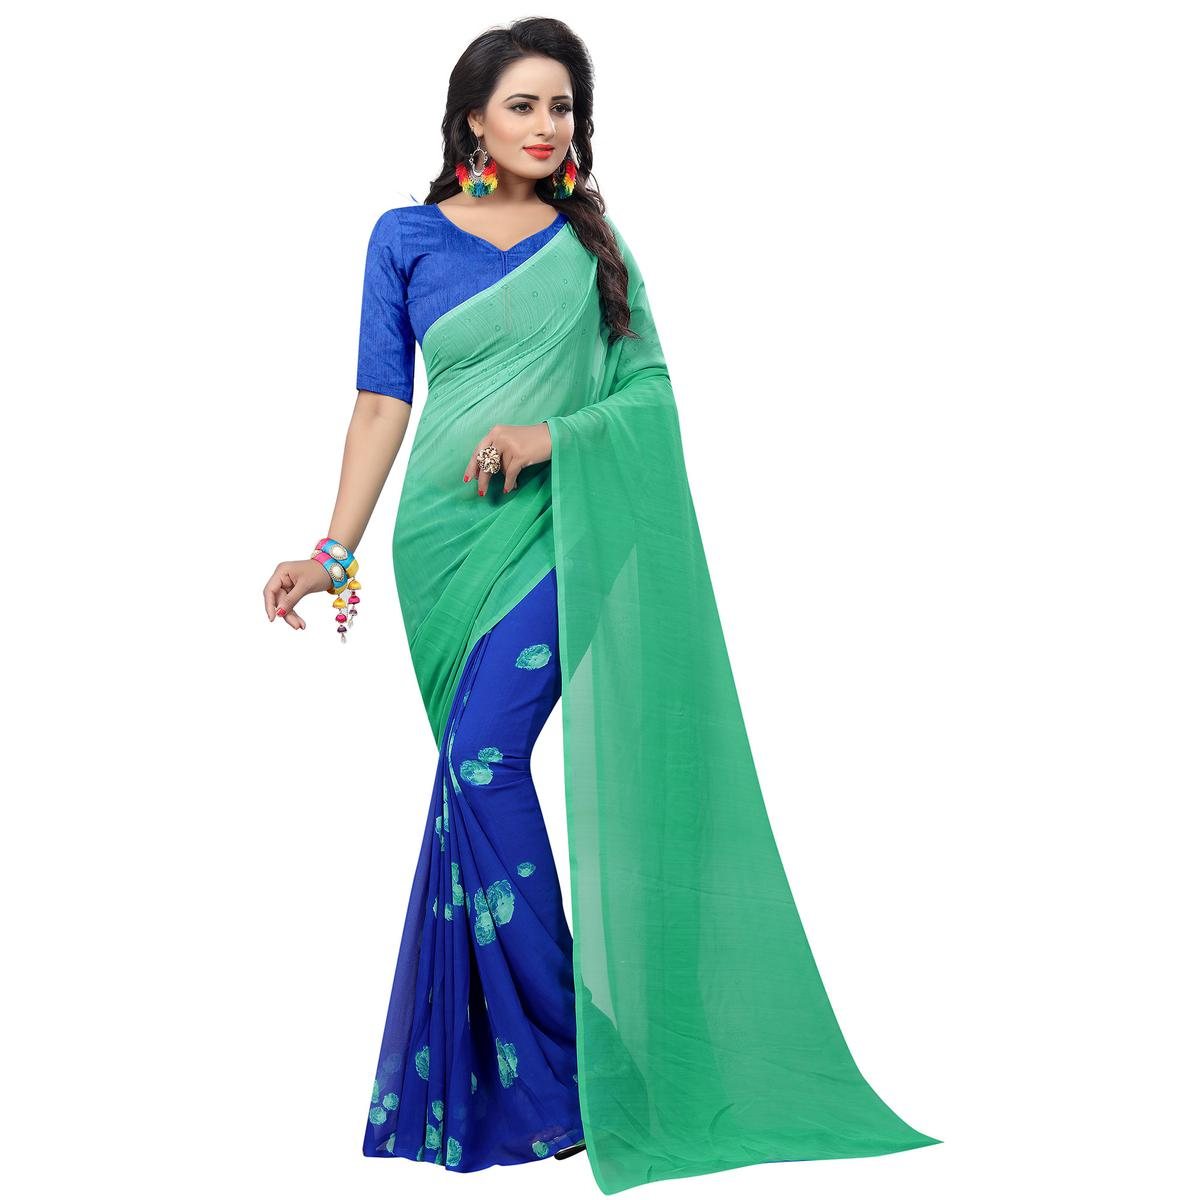 Delightful Blue Colored Casual Wear Printed Georgette Saree